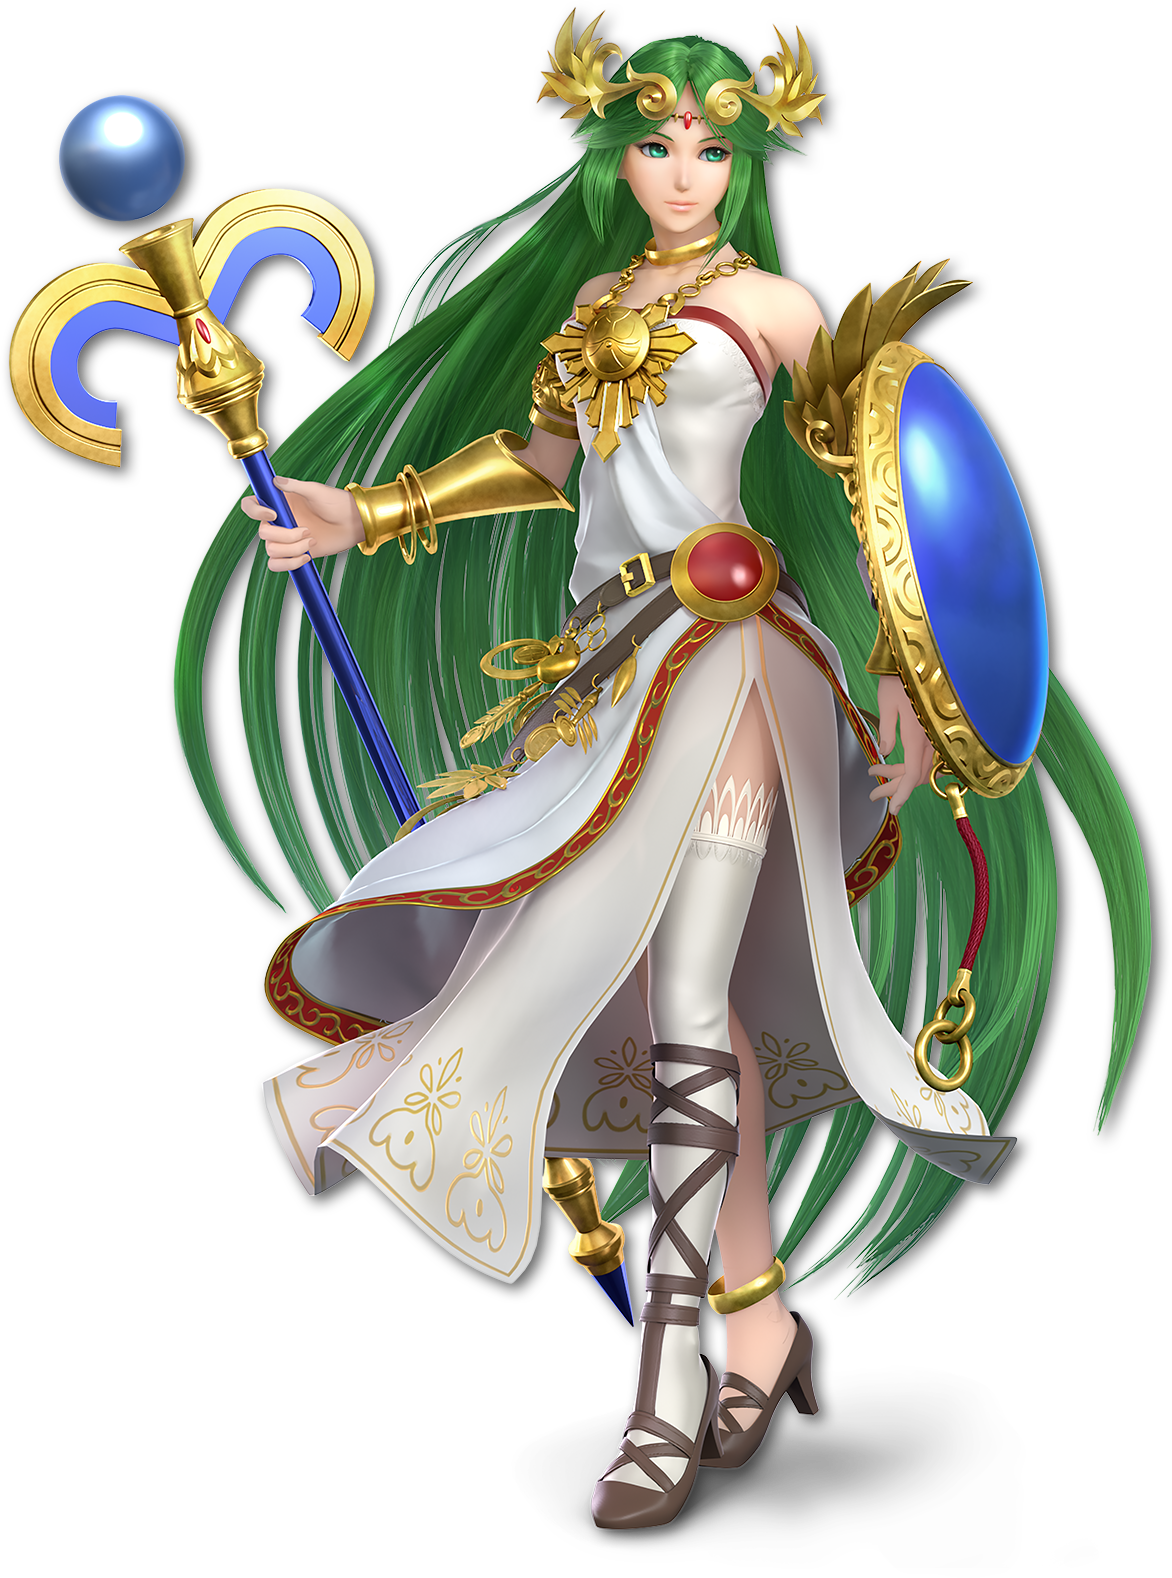 Palutena As She Appears In Super Smash Bros Ultimate